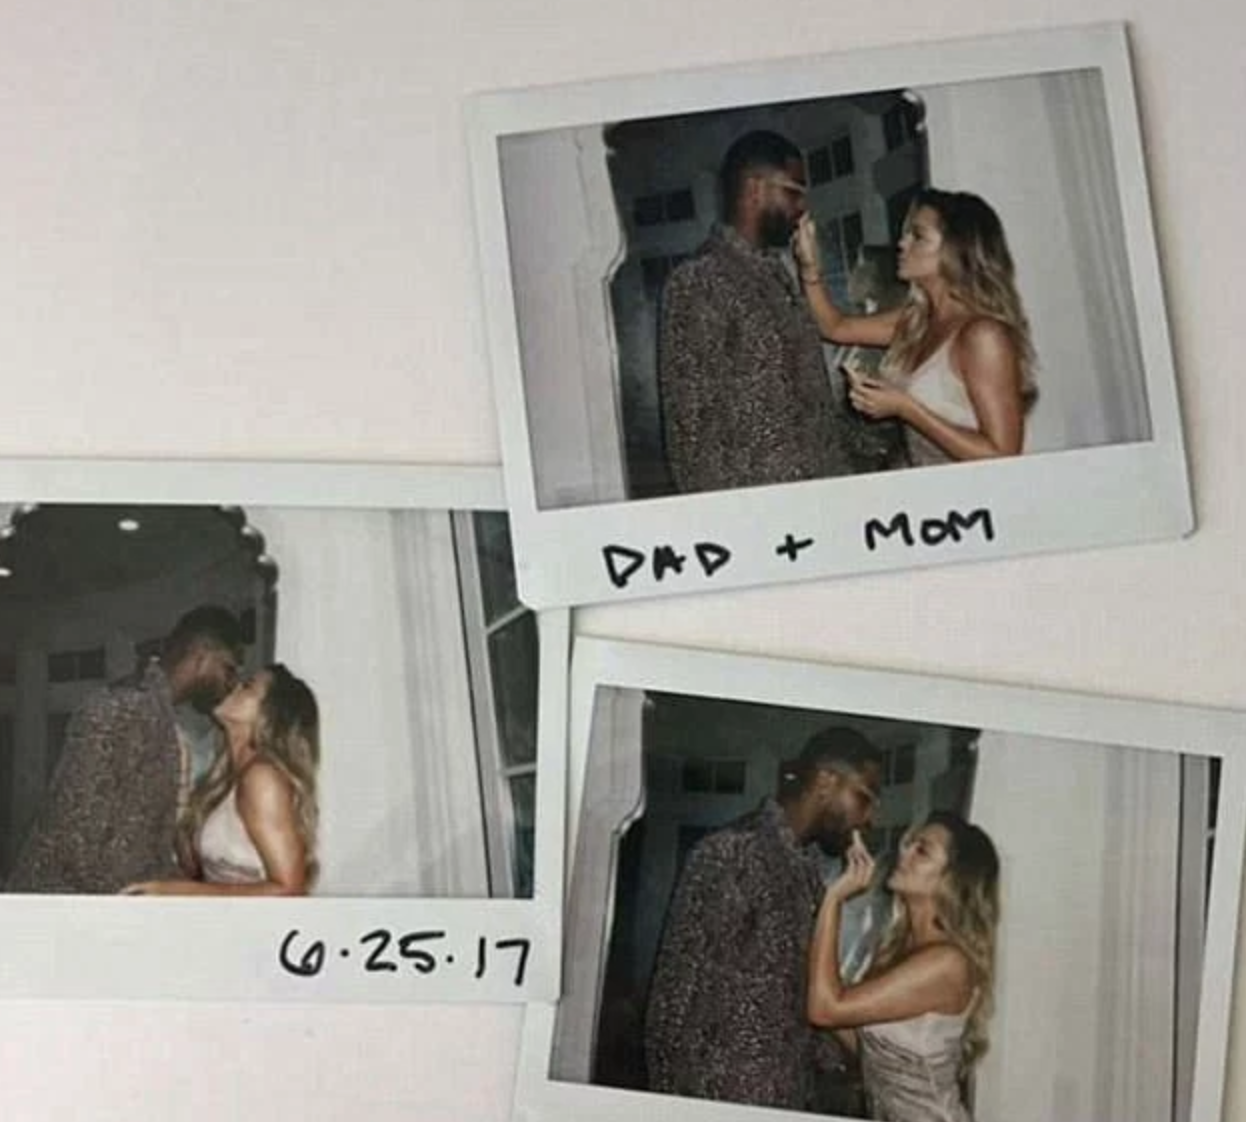 Khloe Kardashian Instagram pregnancy announcement